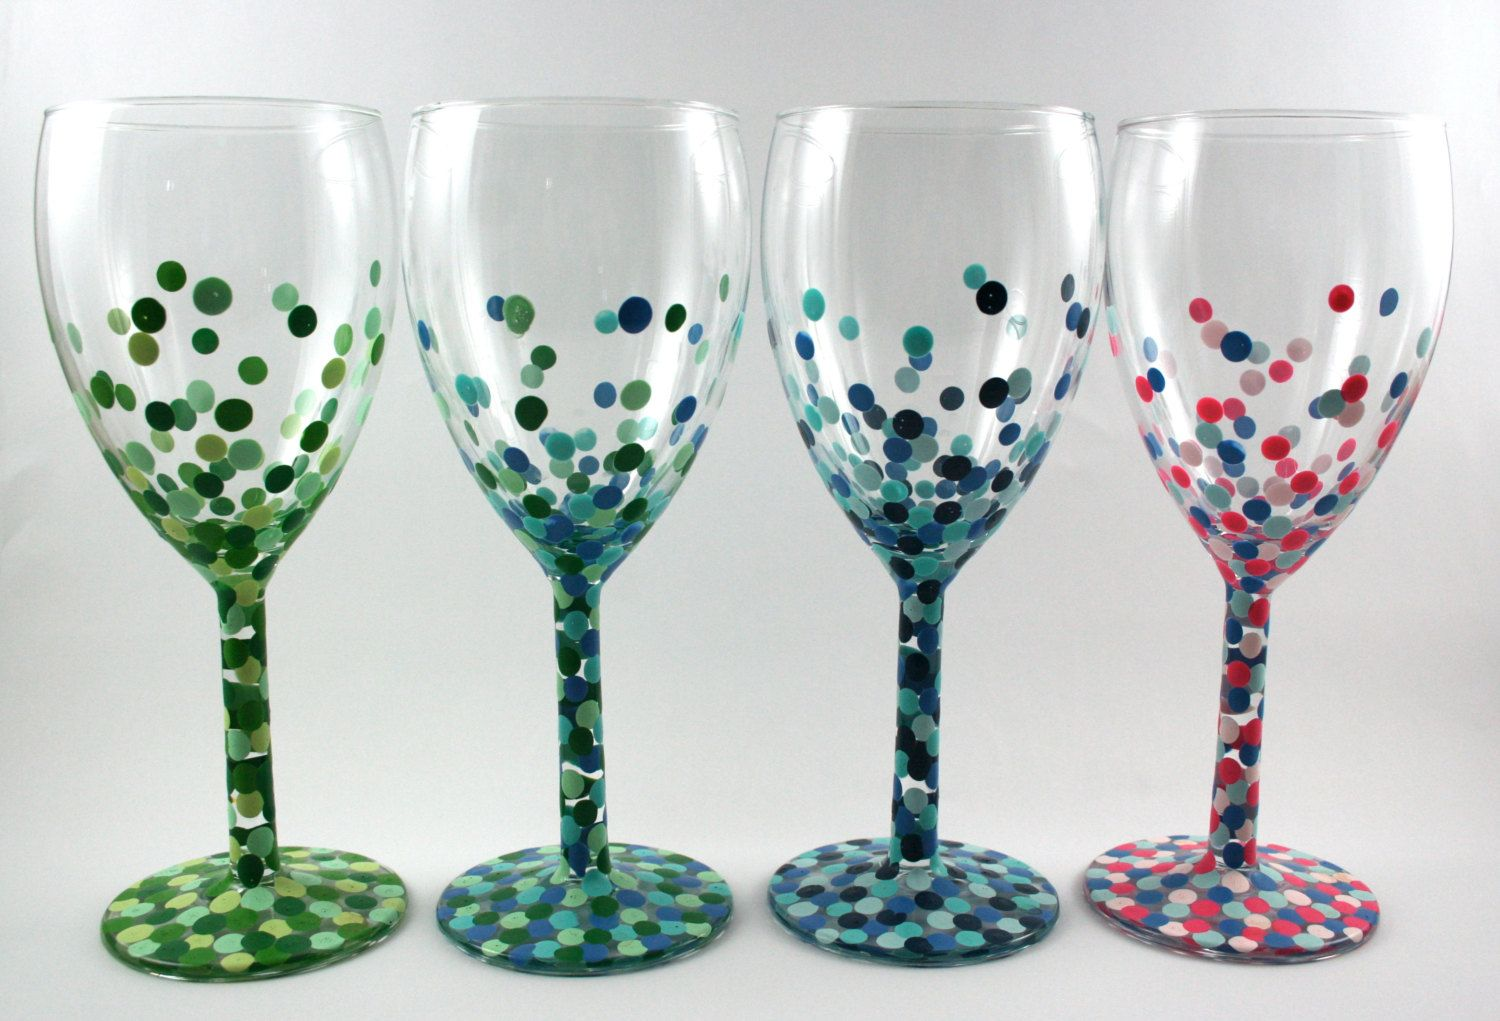 Wine Glass Design Ideas how to paint on wine glasses 78 Images About Wine Glasses On Pinterest Painted Wine Glasses Mosaics And Glasses Wine Glass